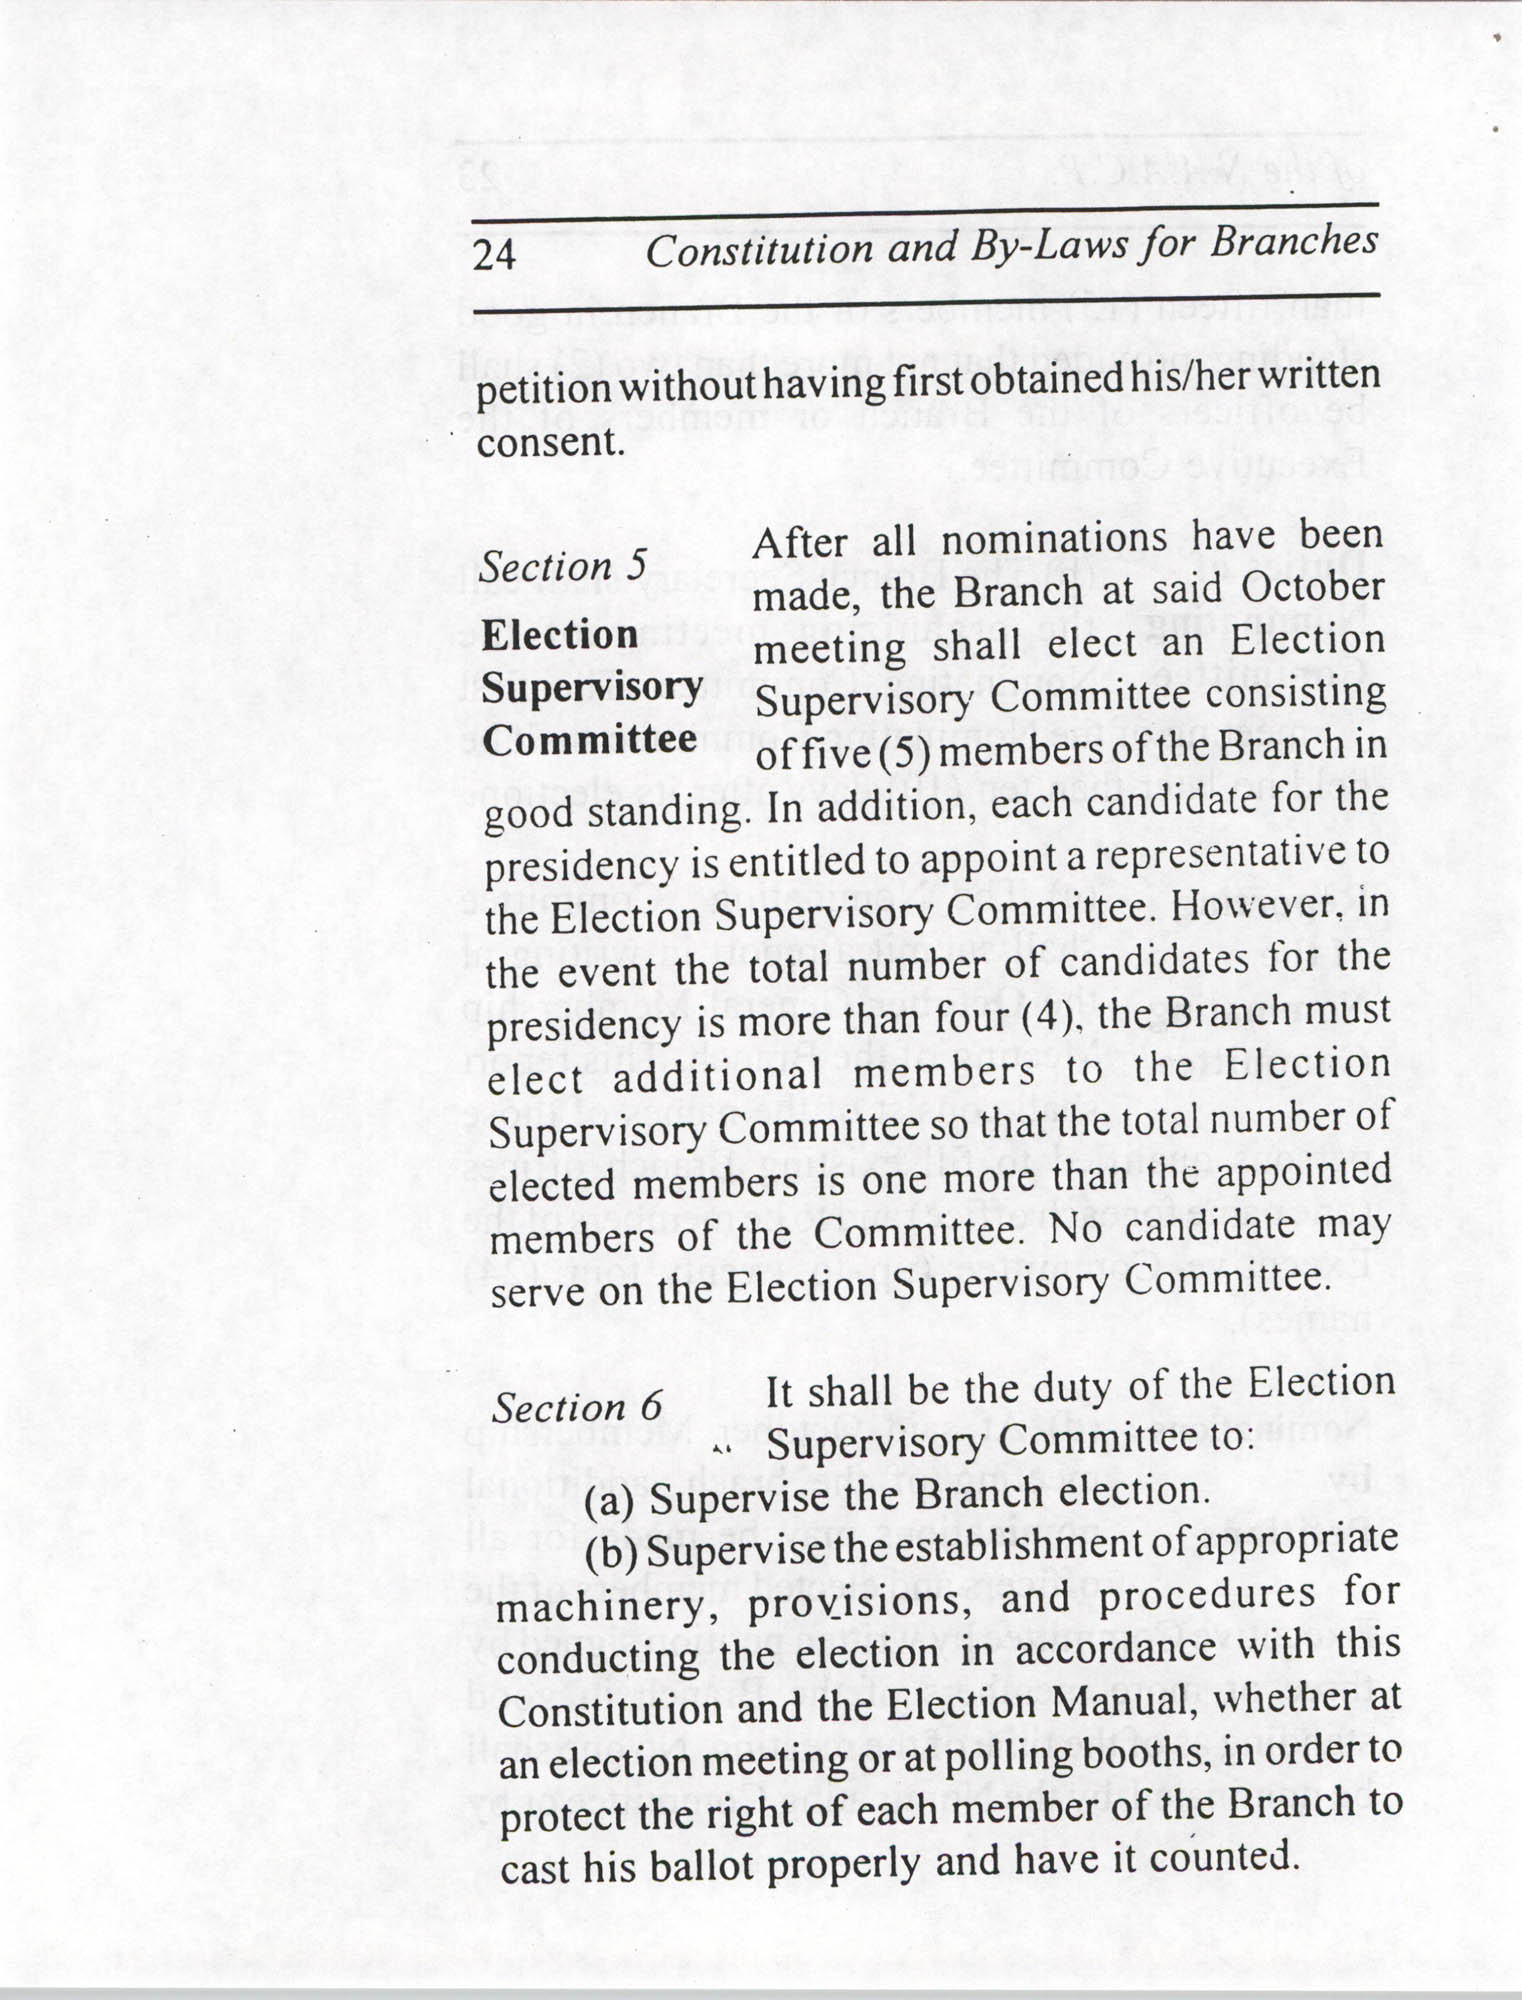 Constitution and By-Laws for Branches of the NAACP, July 1994, Page 24